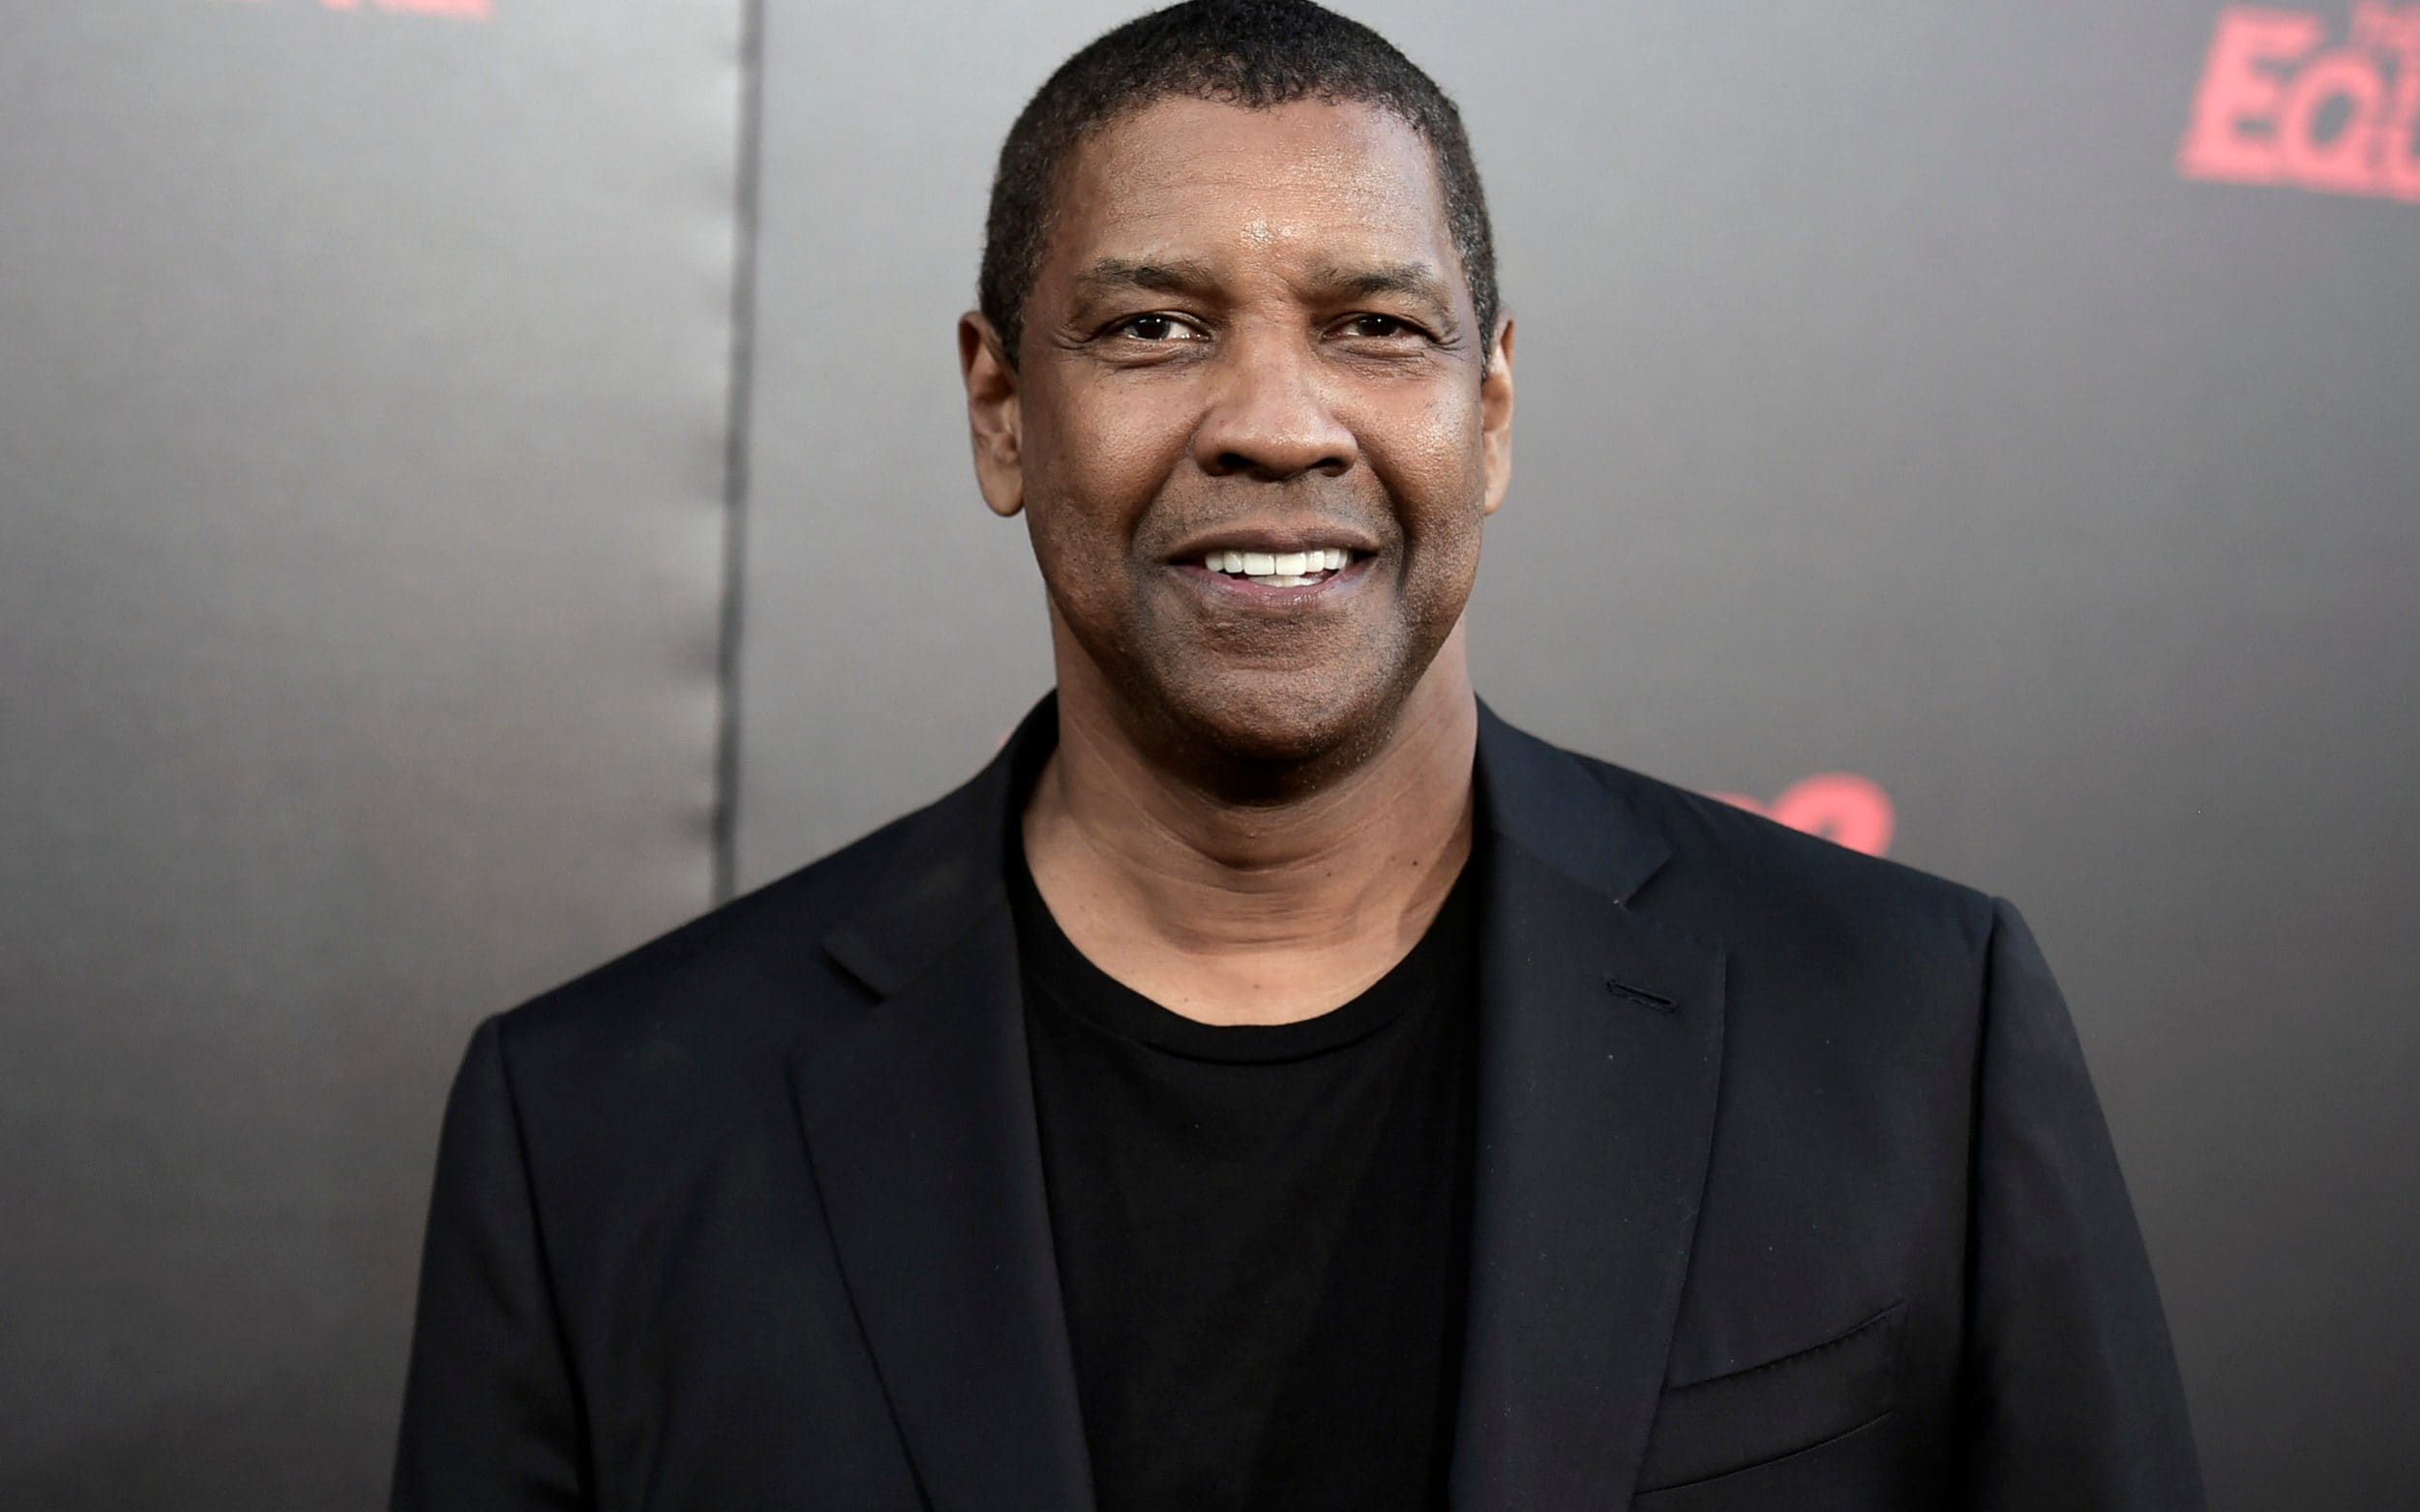 The Complete List of Denzel Washington Movies